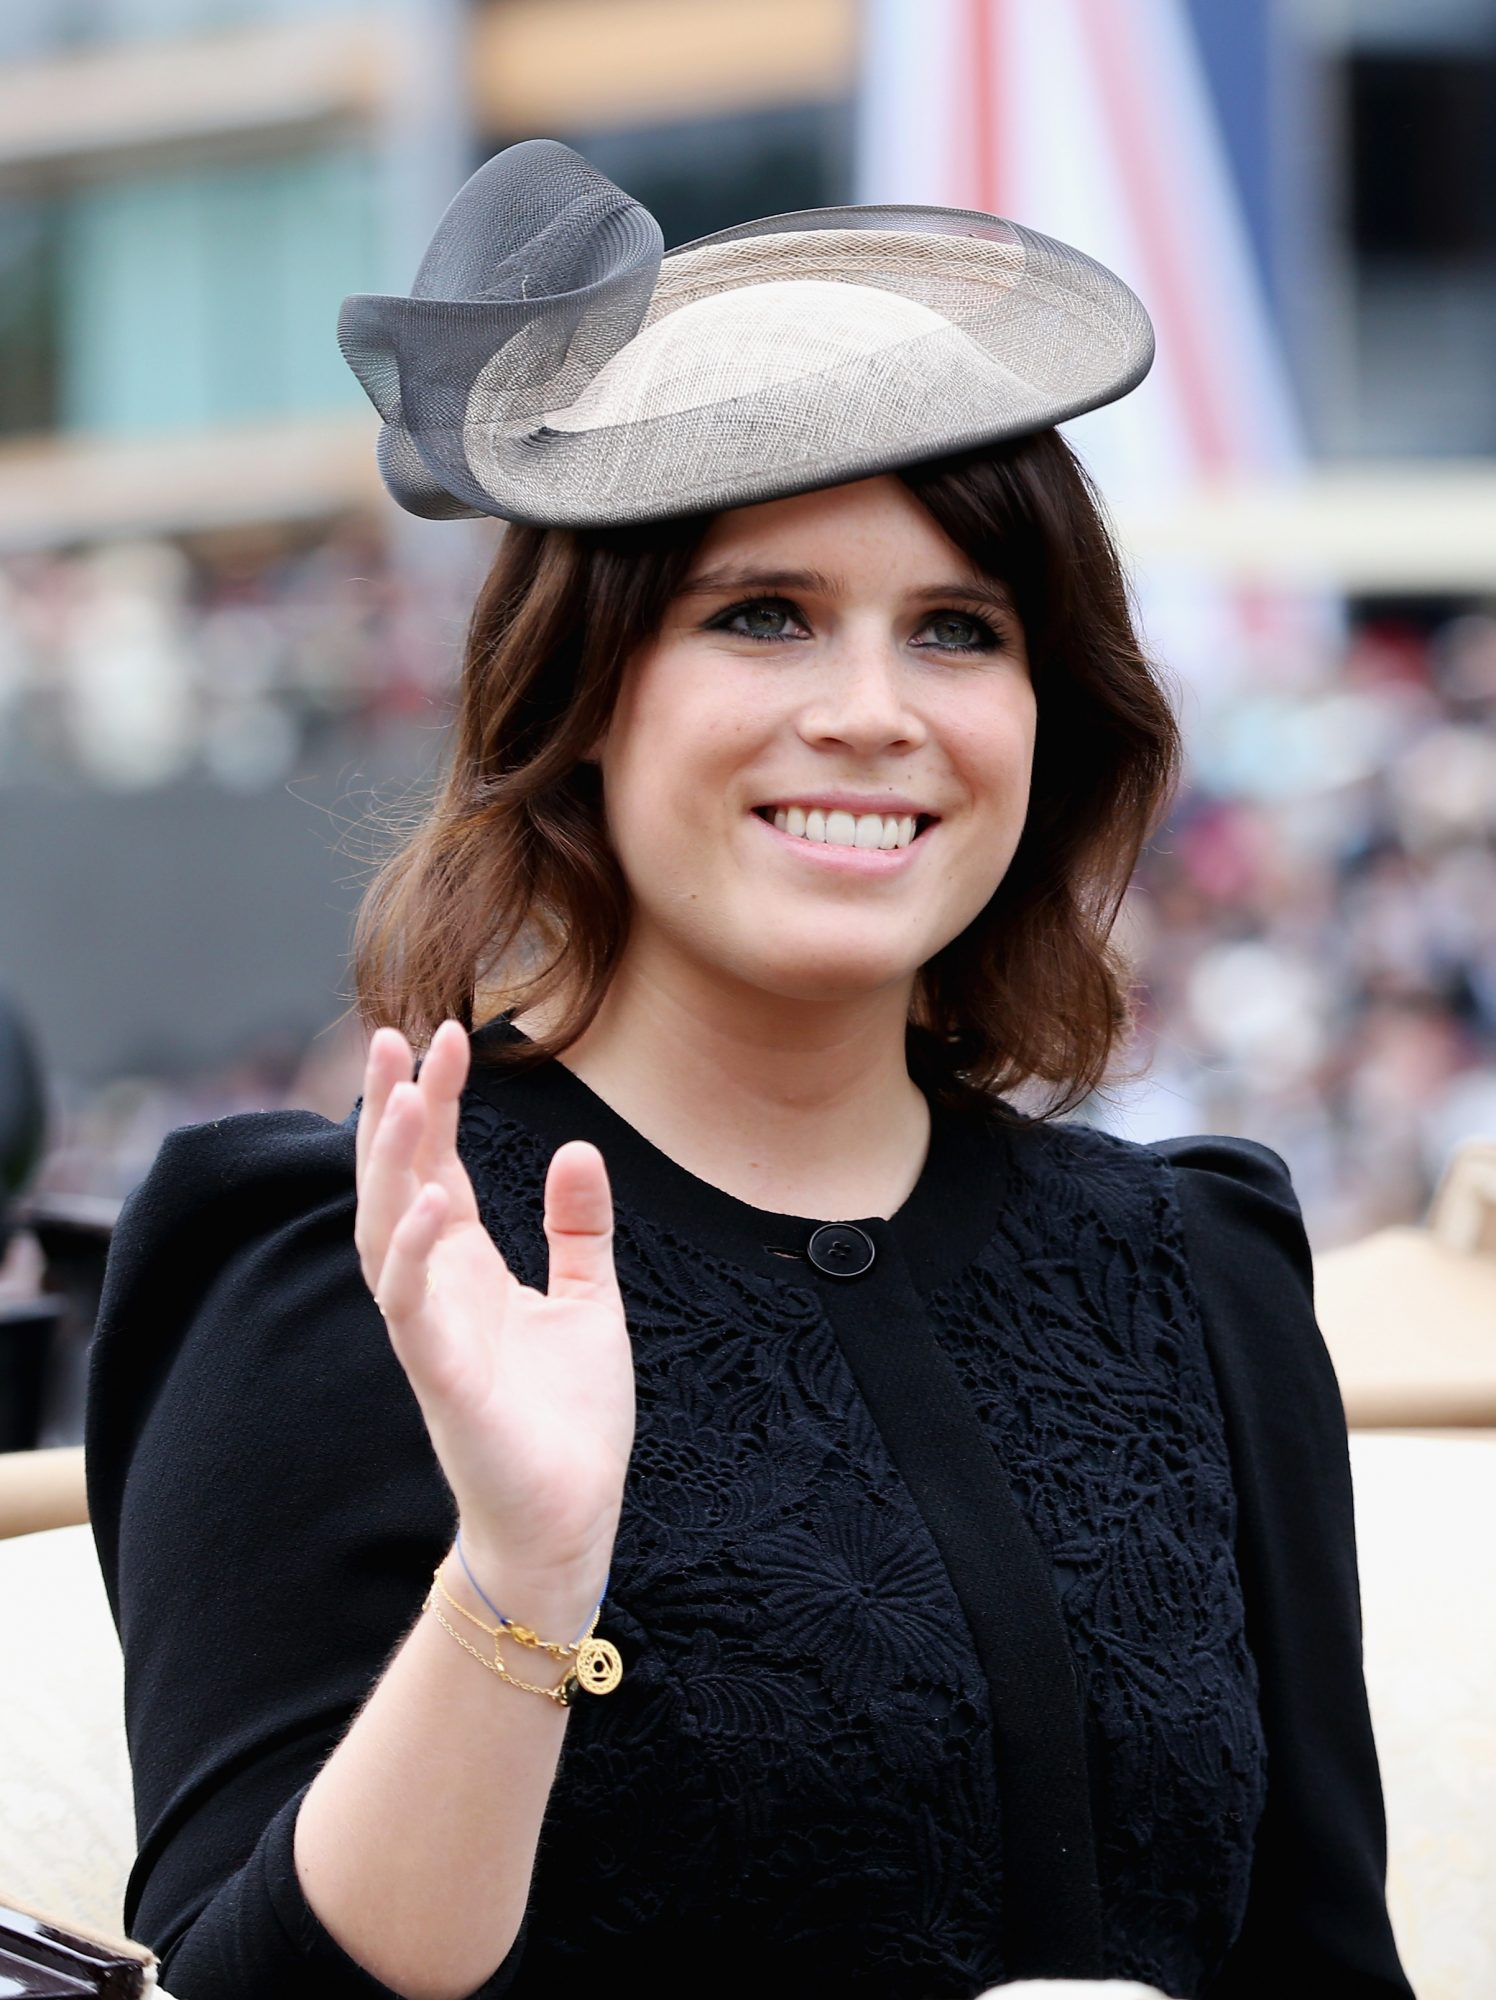 Why Is Princess Eugenie the Only Royal with an Instagram Account?